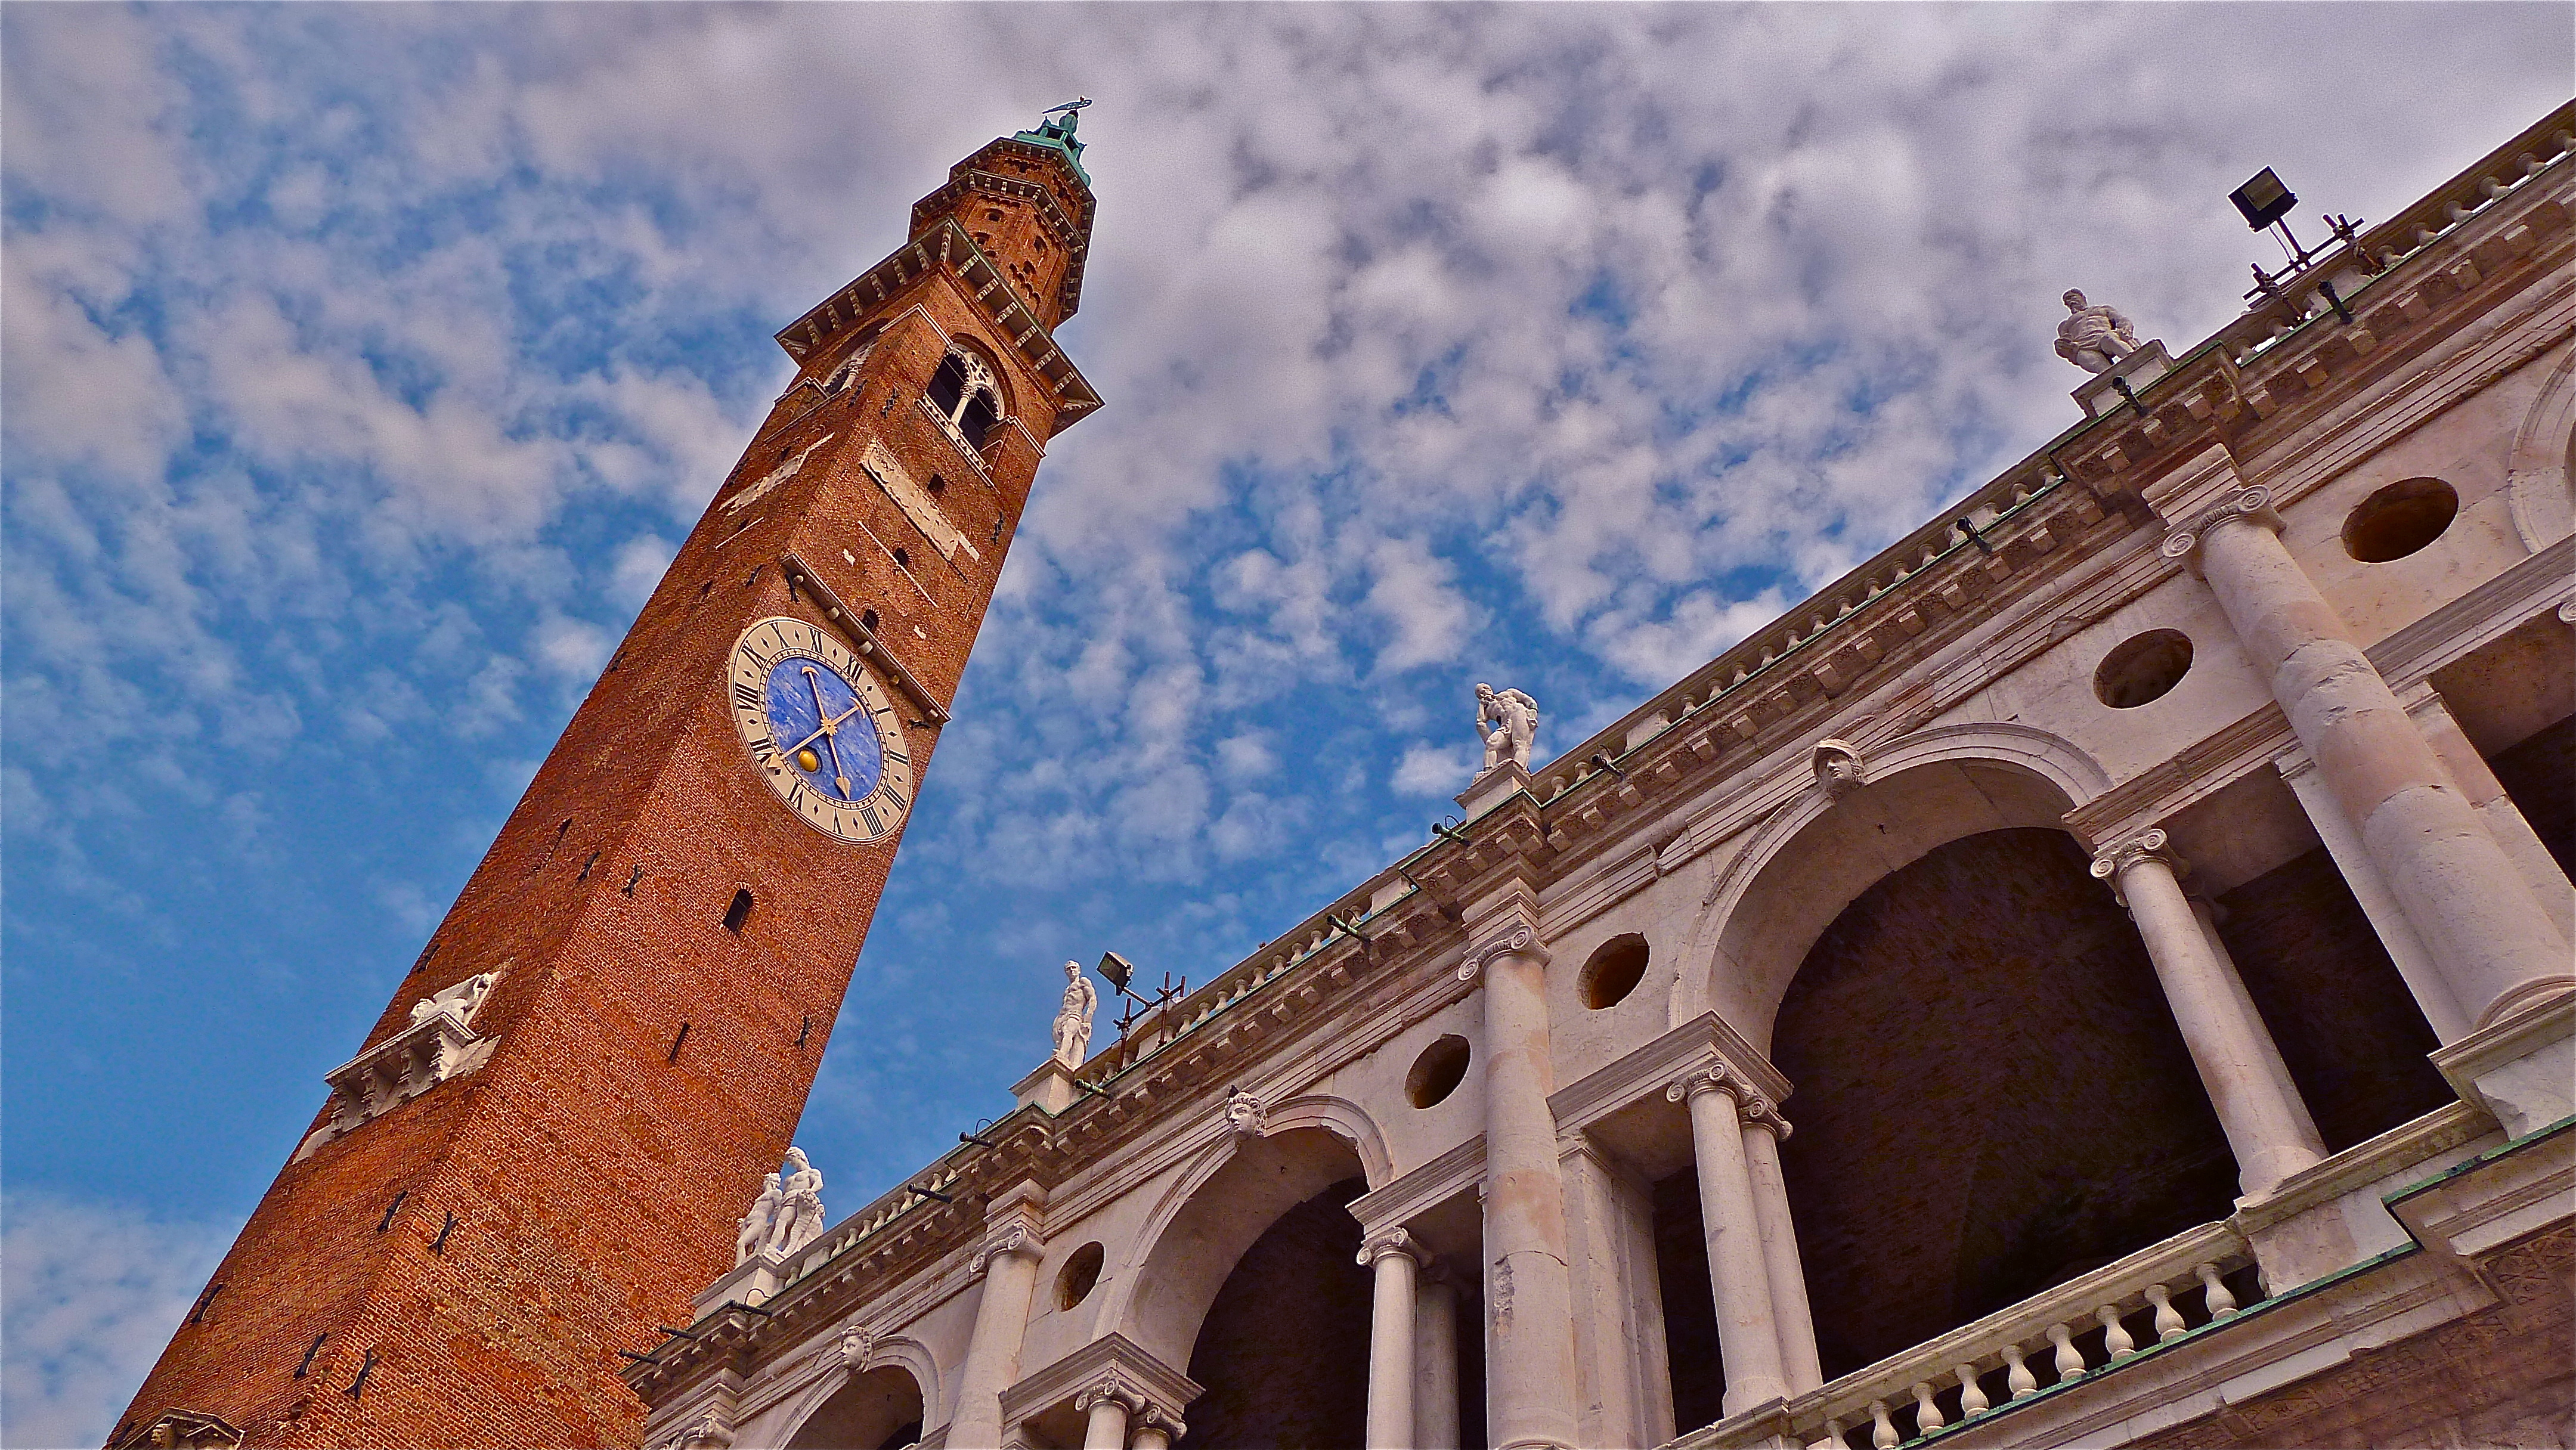 The clock on La Torre Bissara was designed by 14th century architect ...